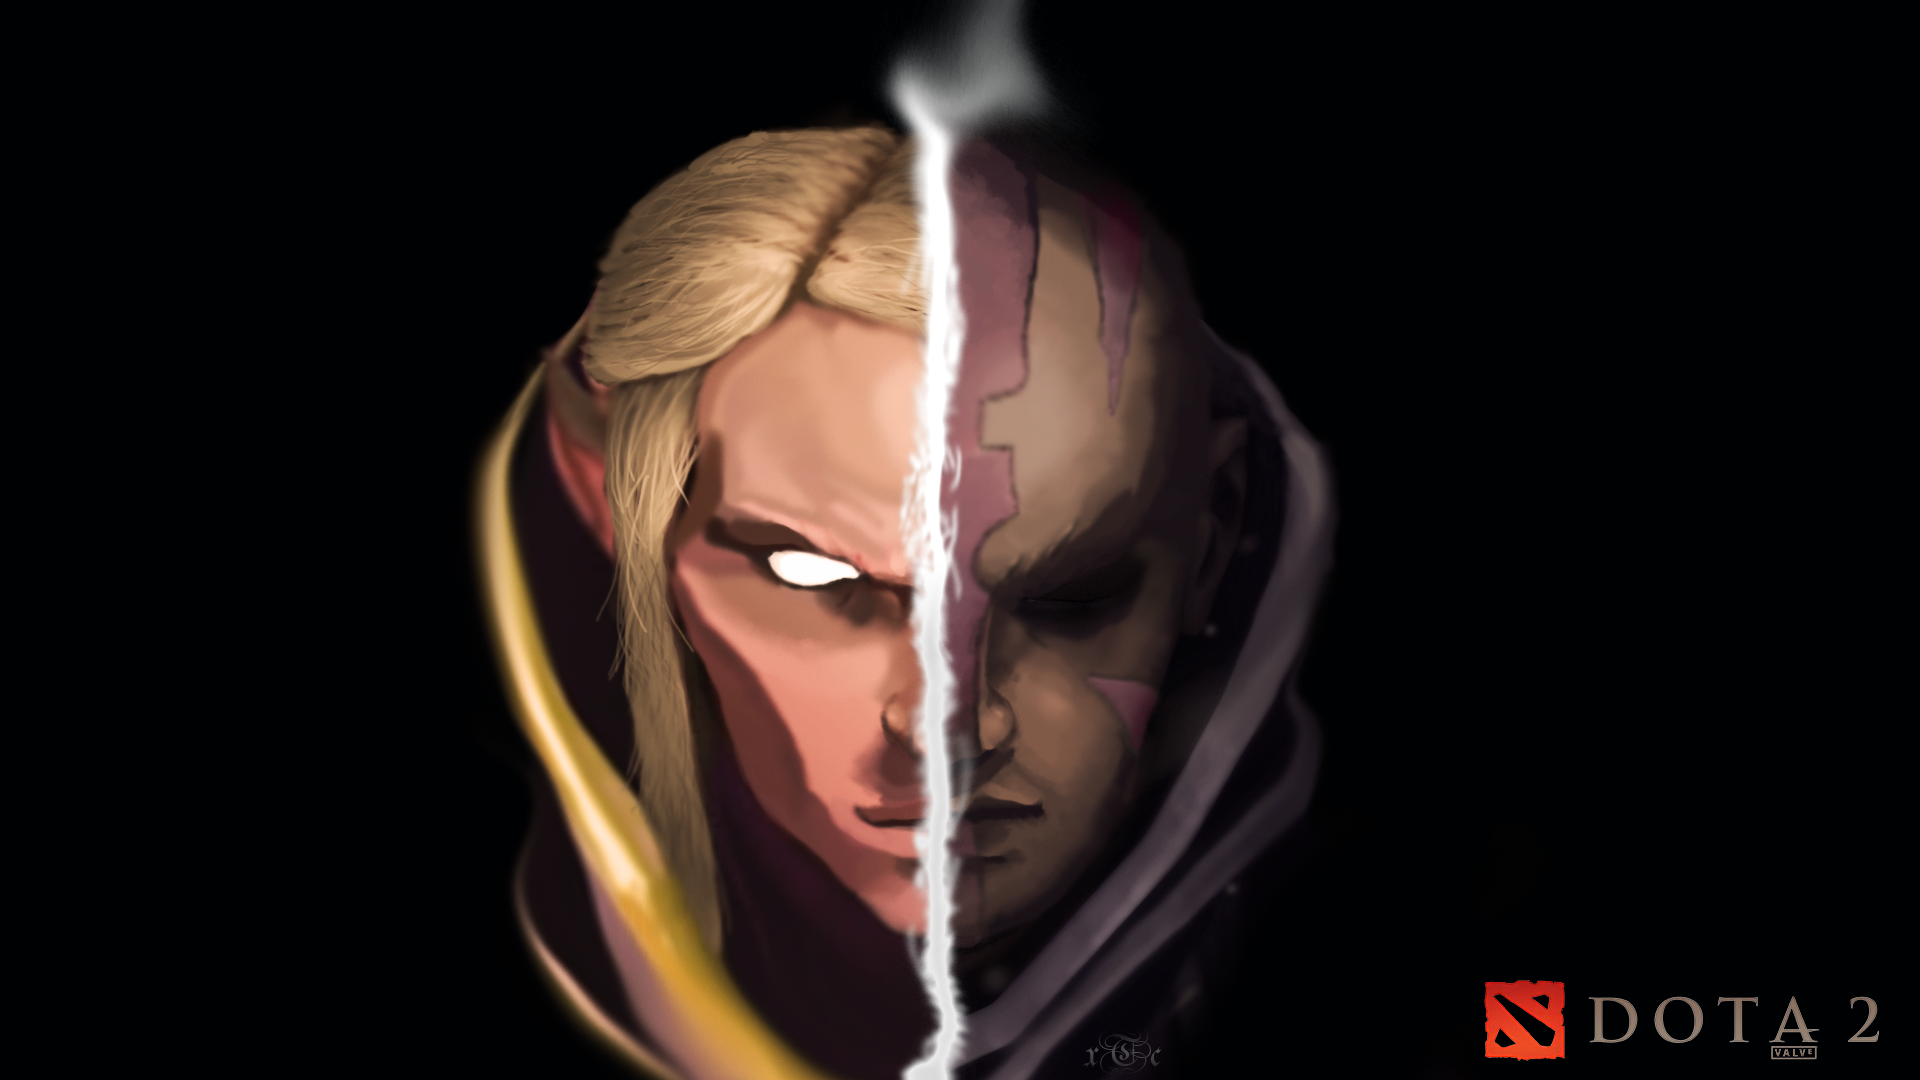 I Painted An Invoker Antimage Wallpaper Using Only A Mouse Dota2